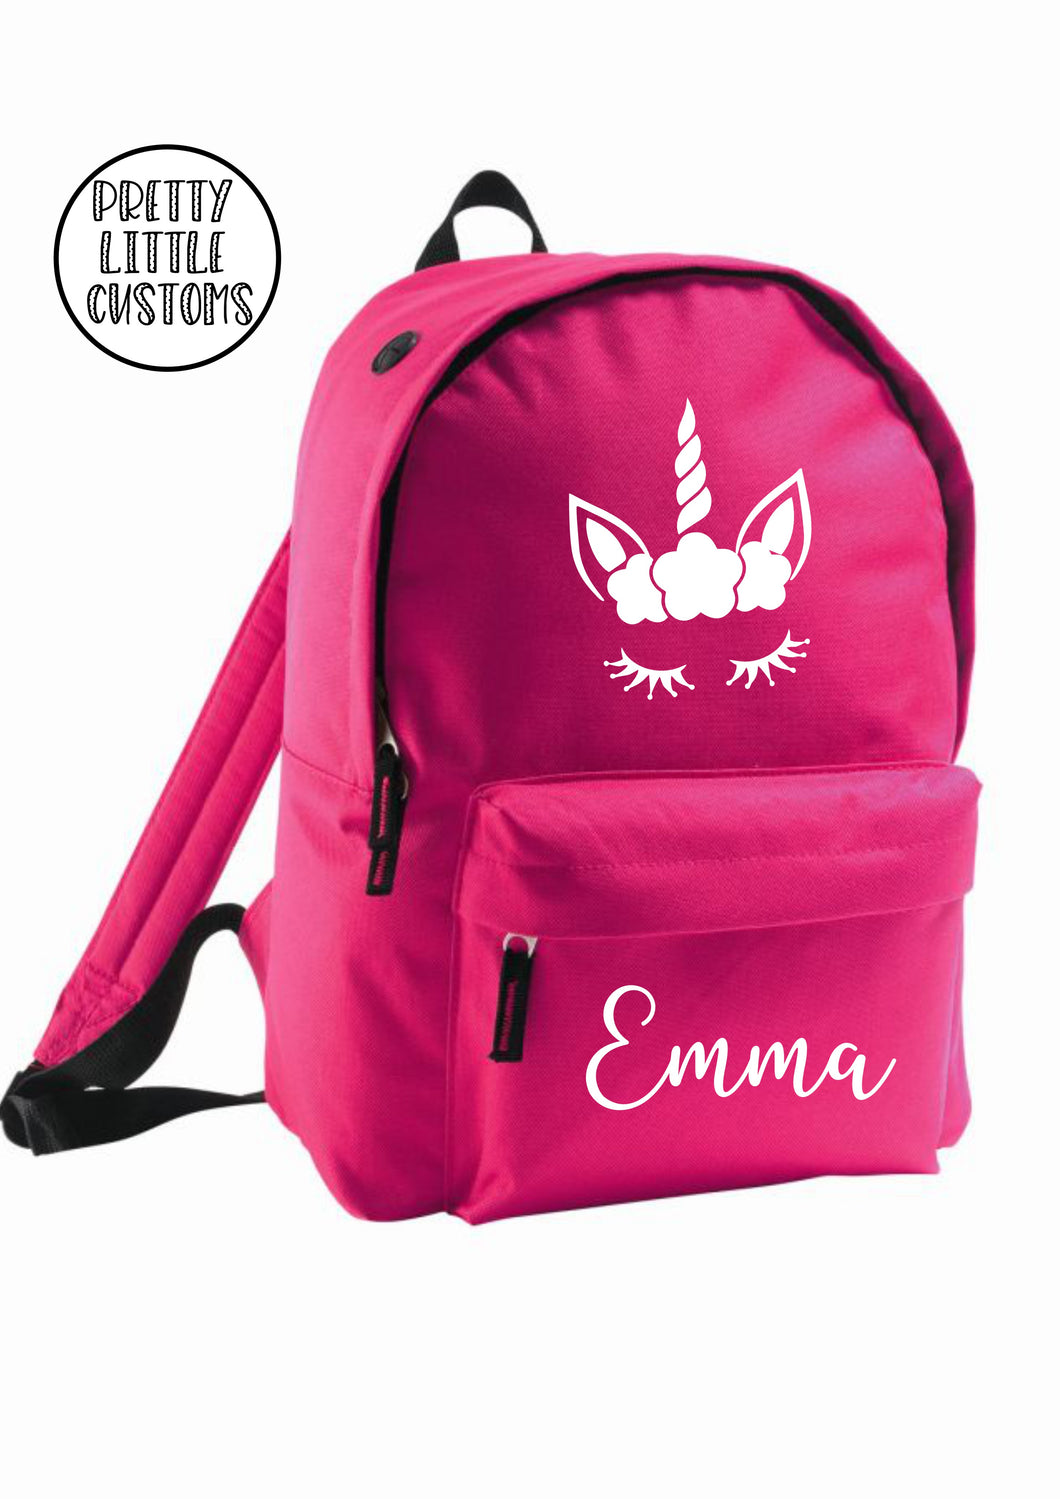 Personalised kids name rucksack/backpack/school bag - unicorn - bright pink